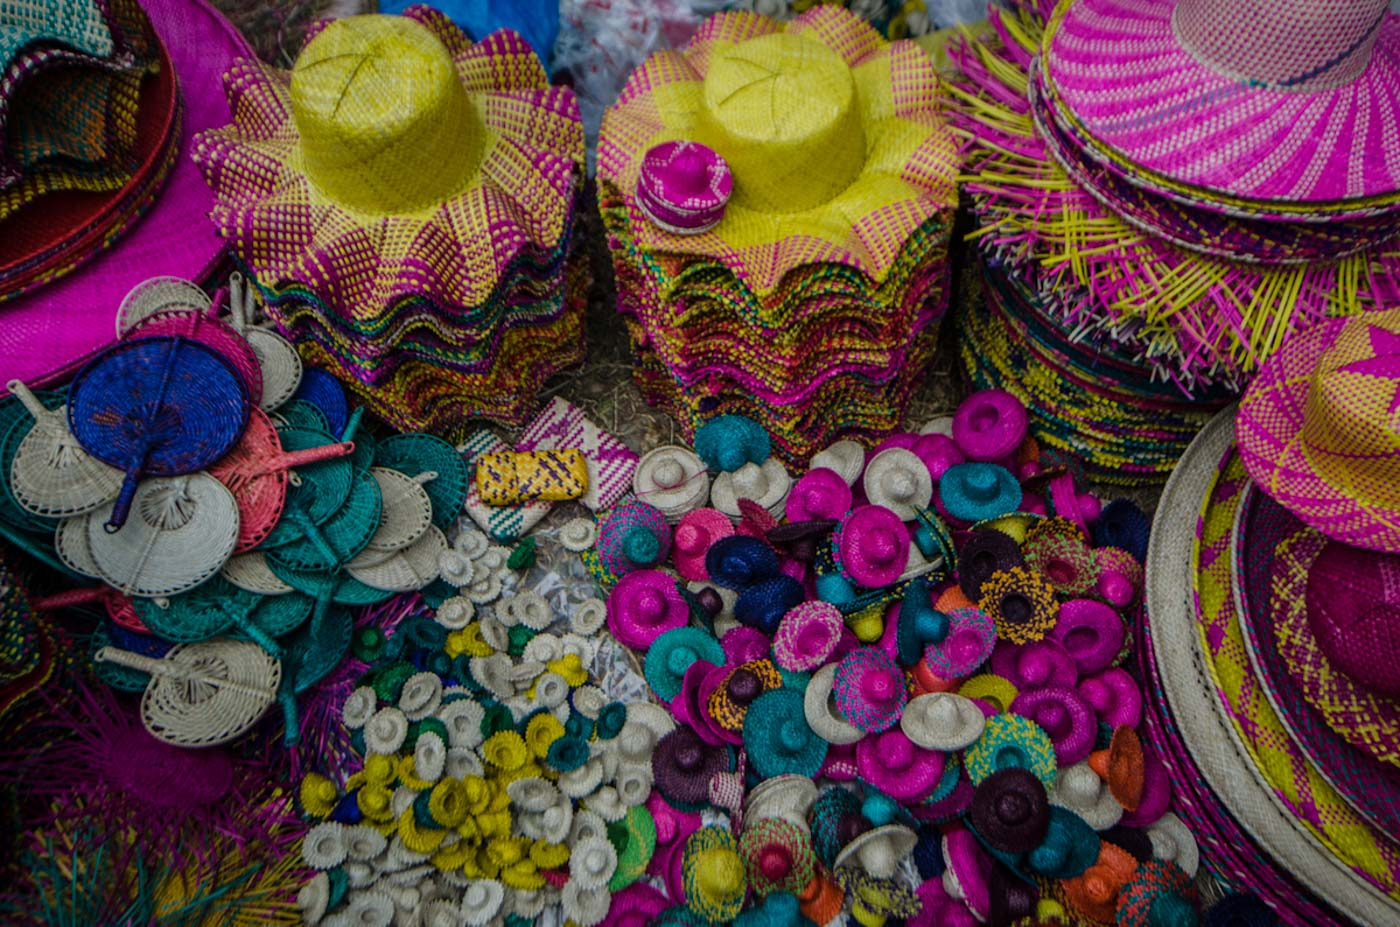 COLORFUL SOUVENIRS. Hats and abanico fans can be bought by tourists for pasalubong